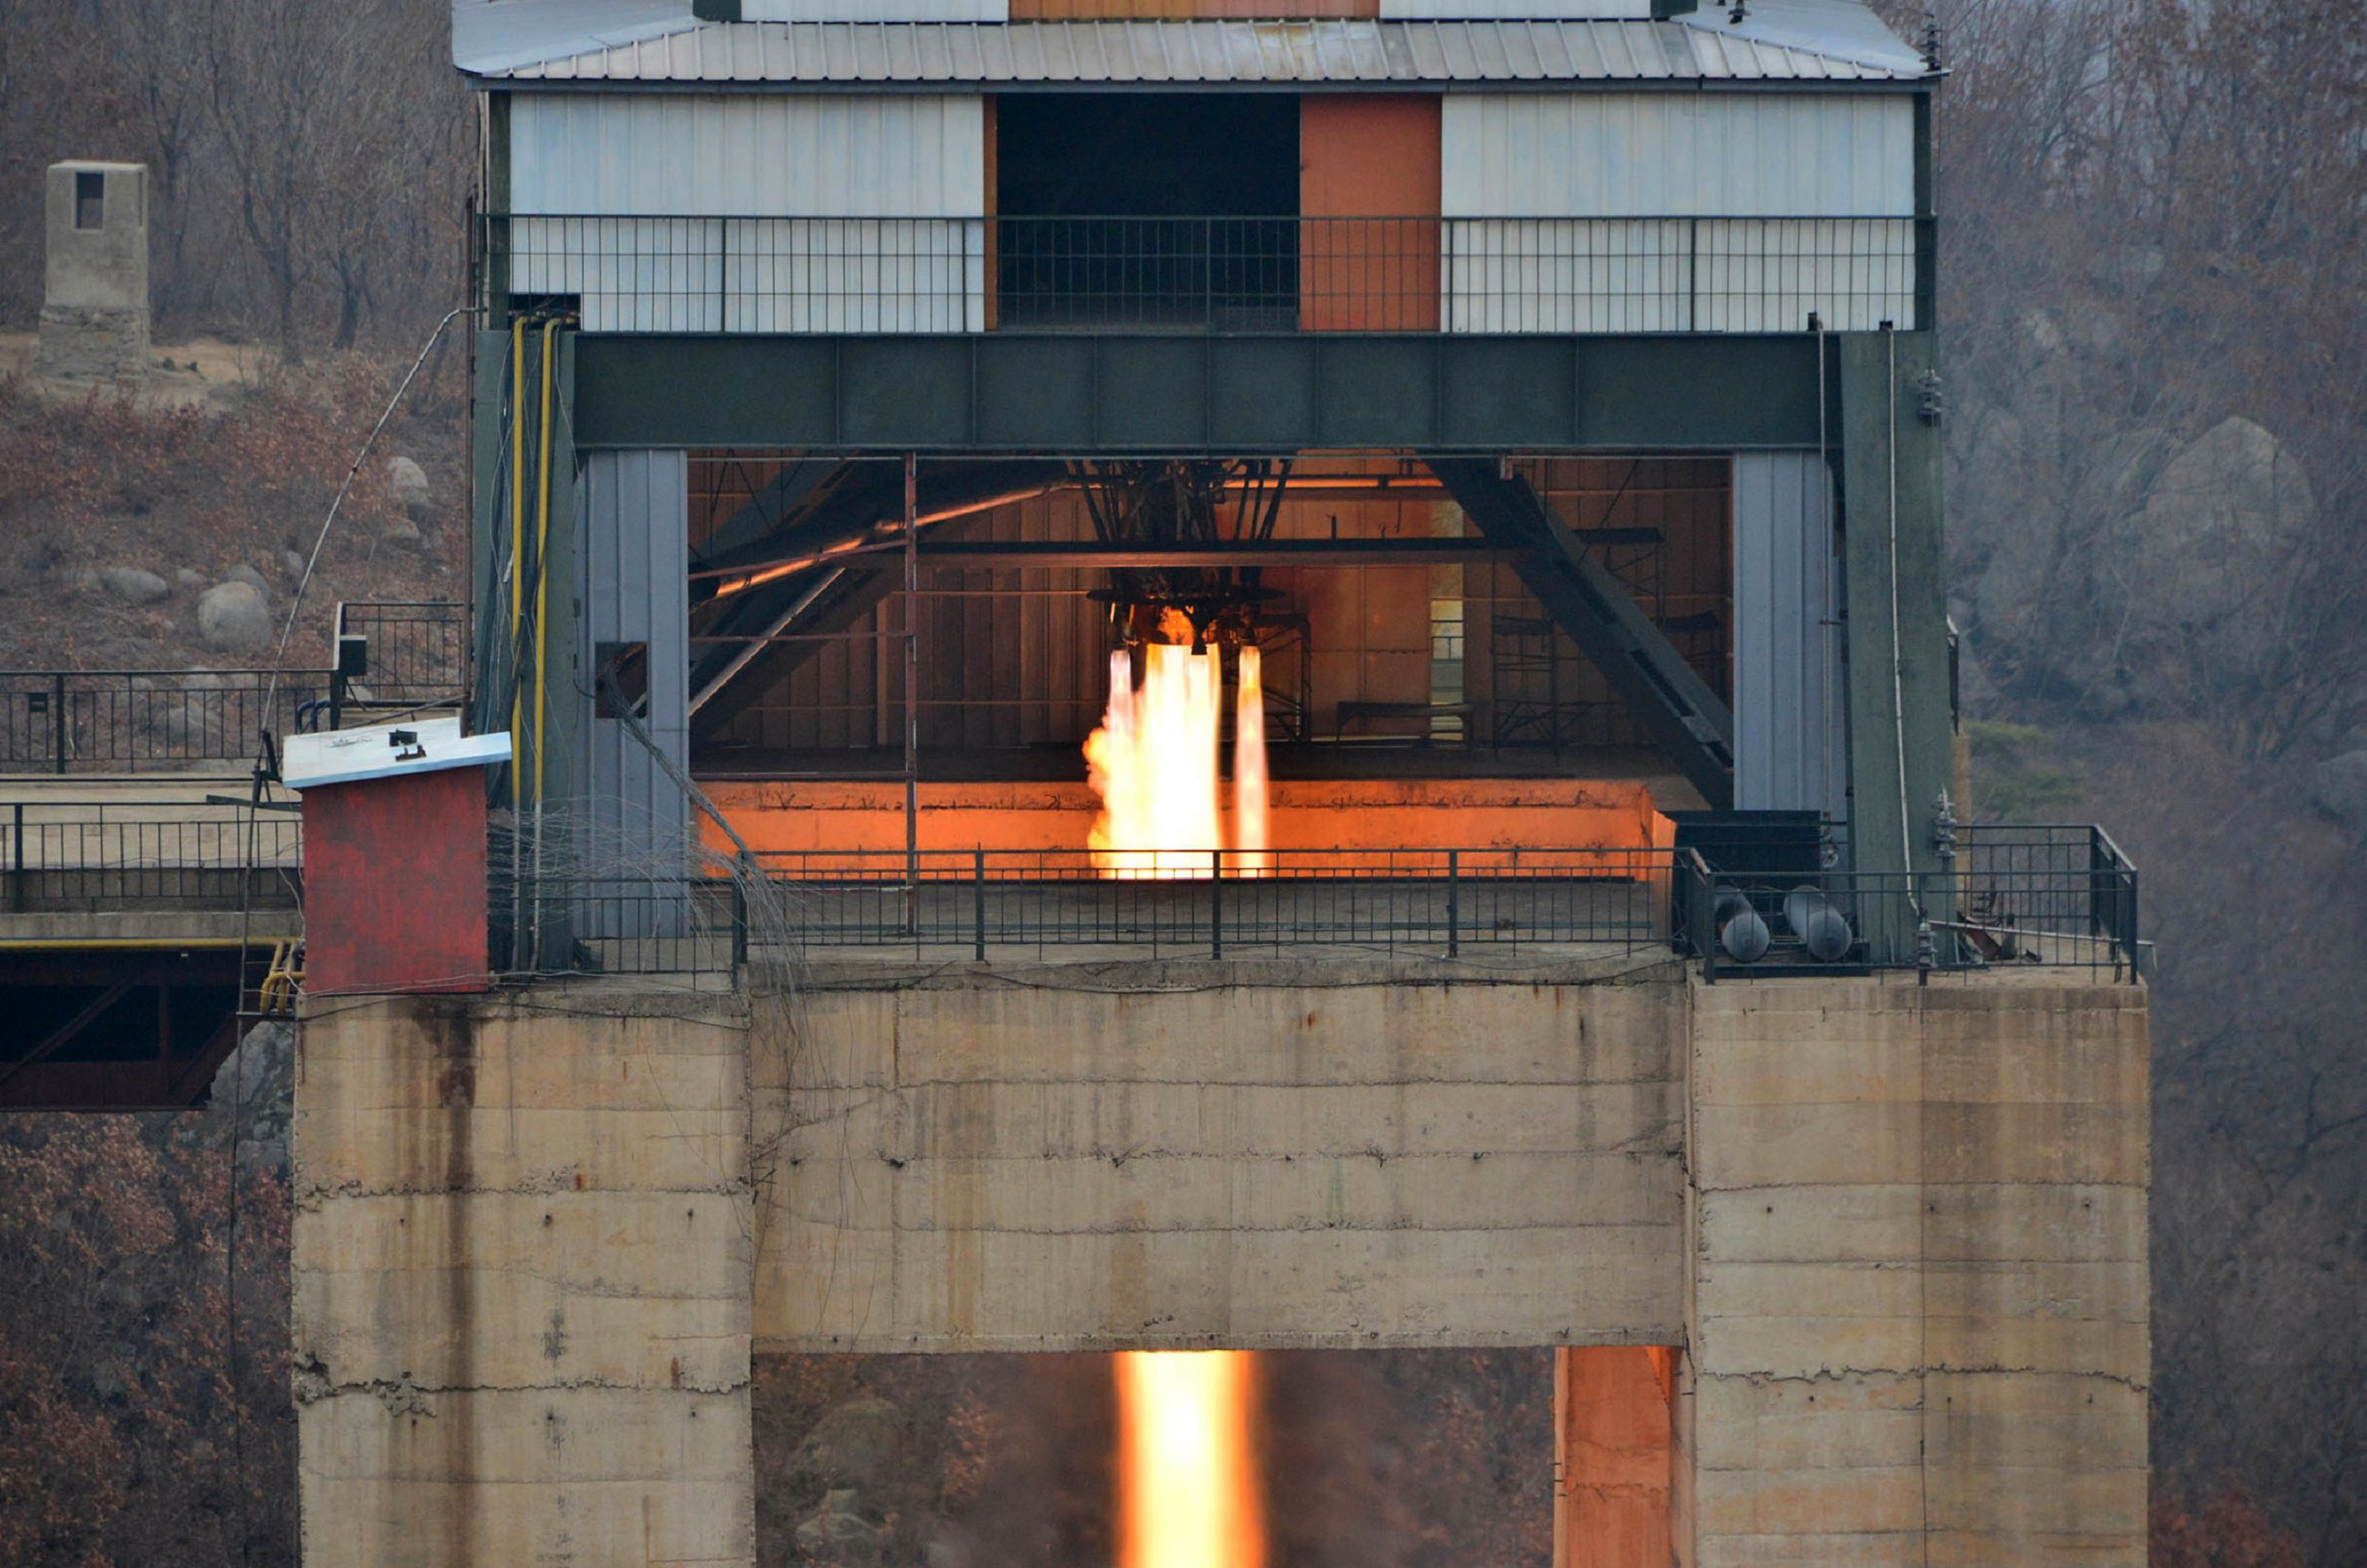 01_05_North_Korea_rocket_engine